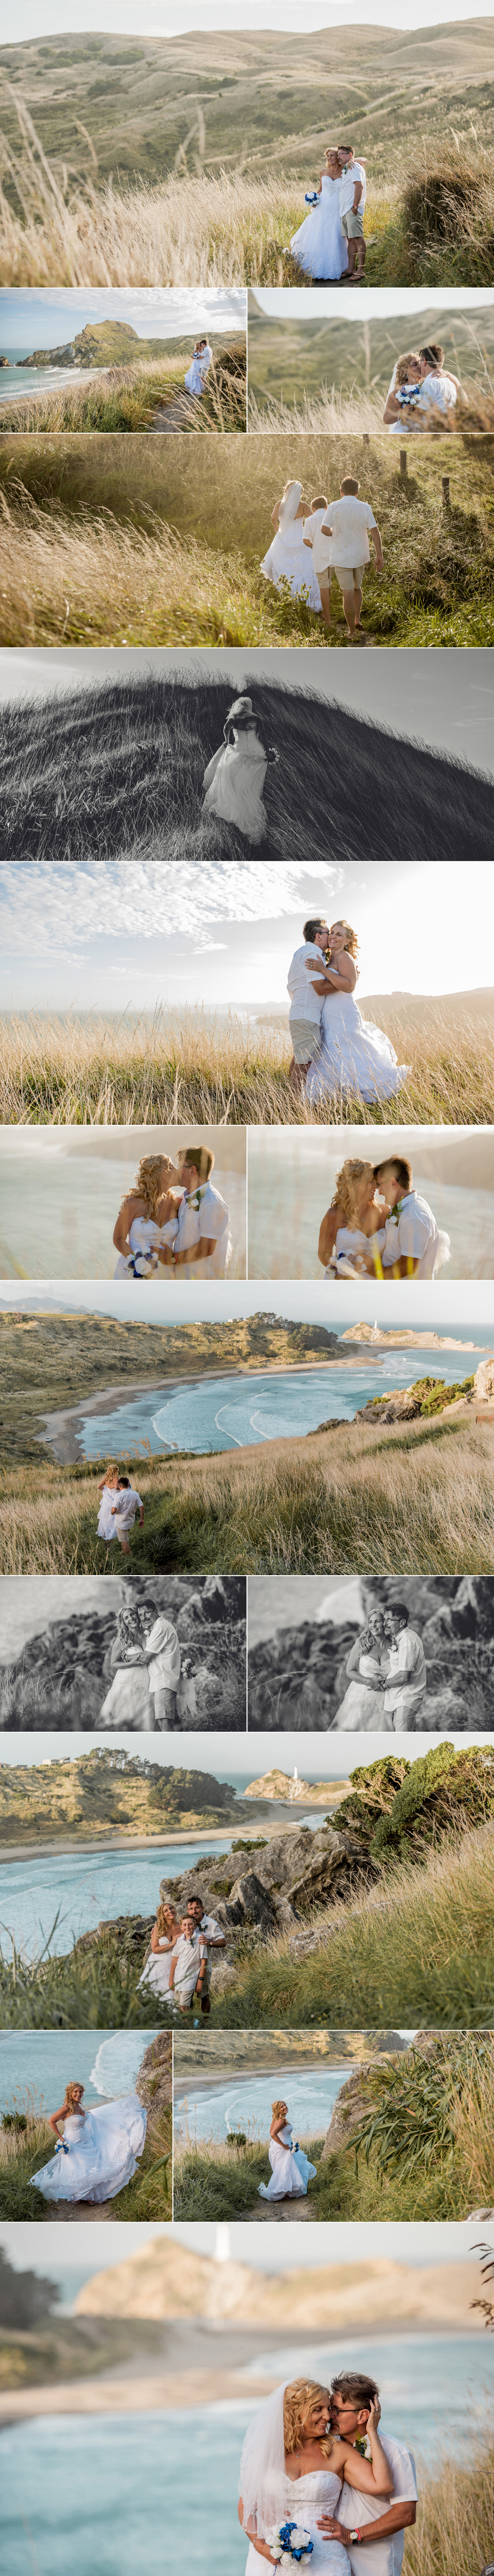 Castlepoint wedding Photographs